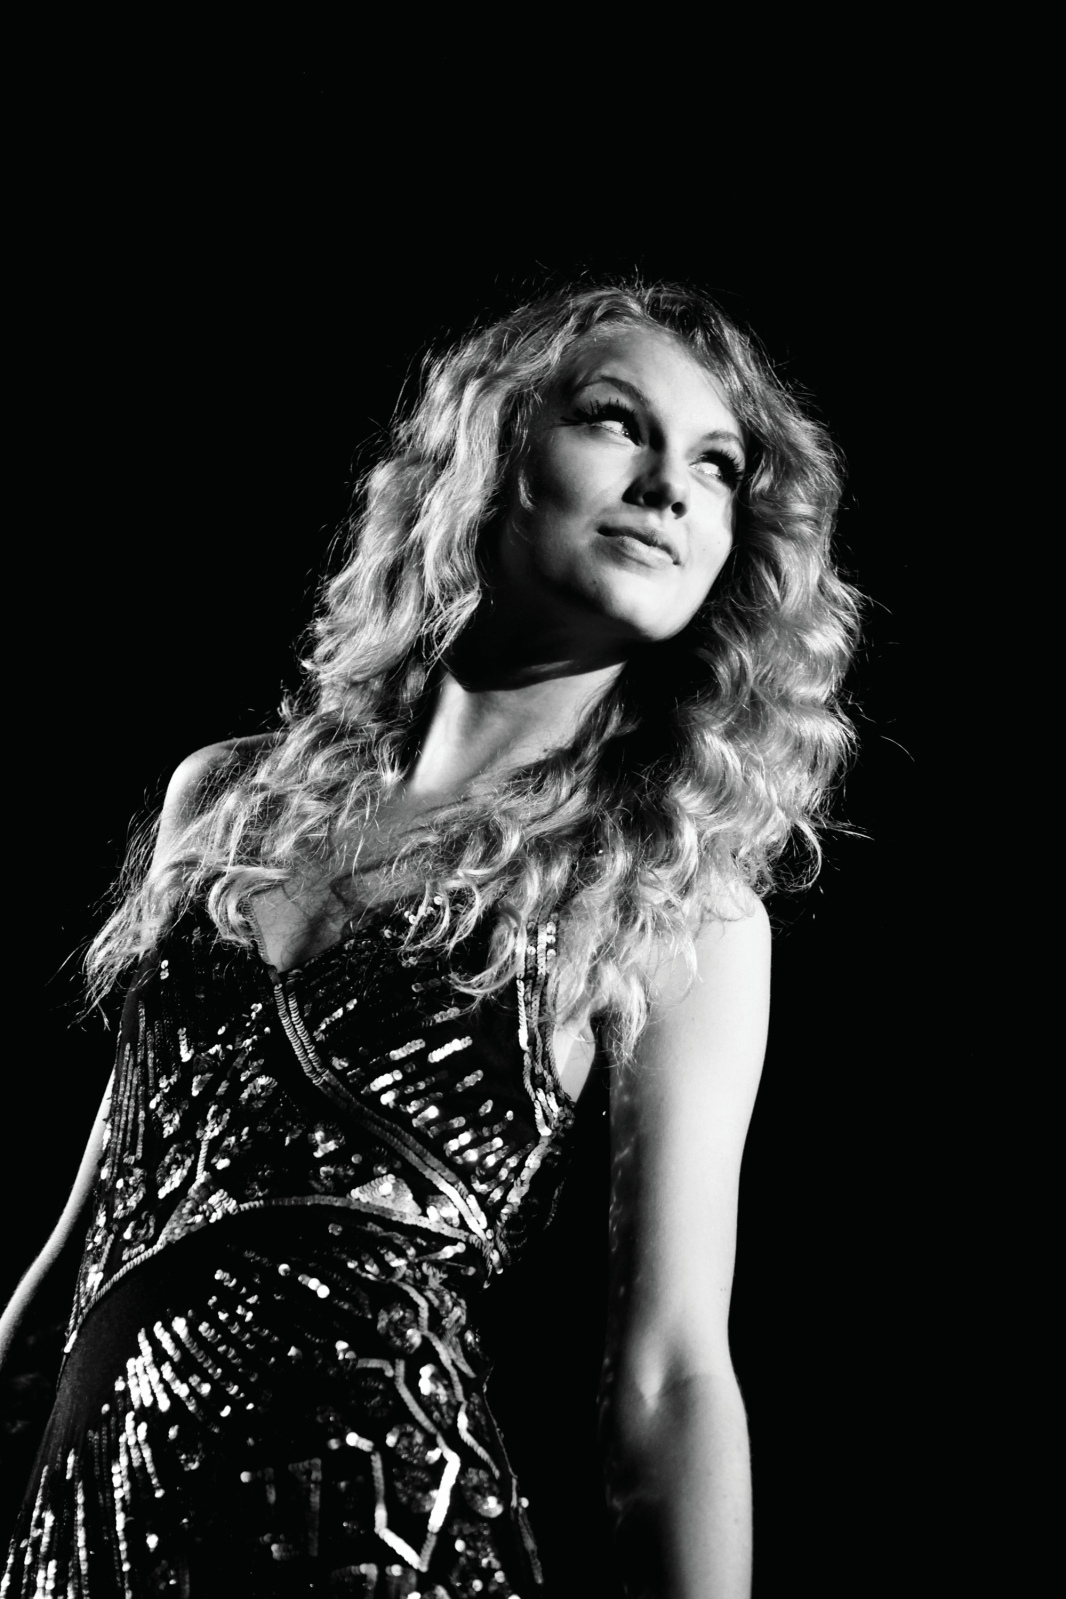 Fearless Tour 2009 Promotional Photos - Taylor Swift Photo (22397162) - Fanpop